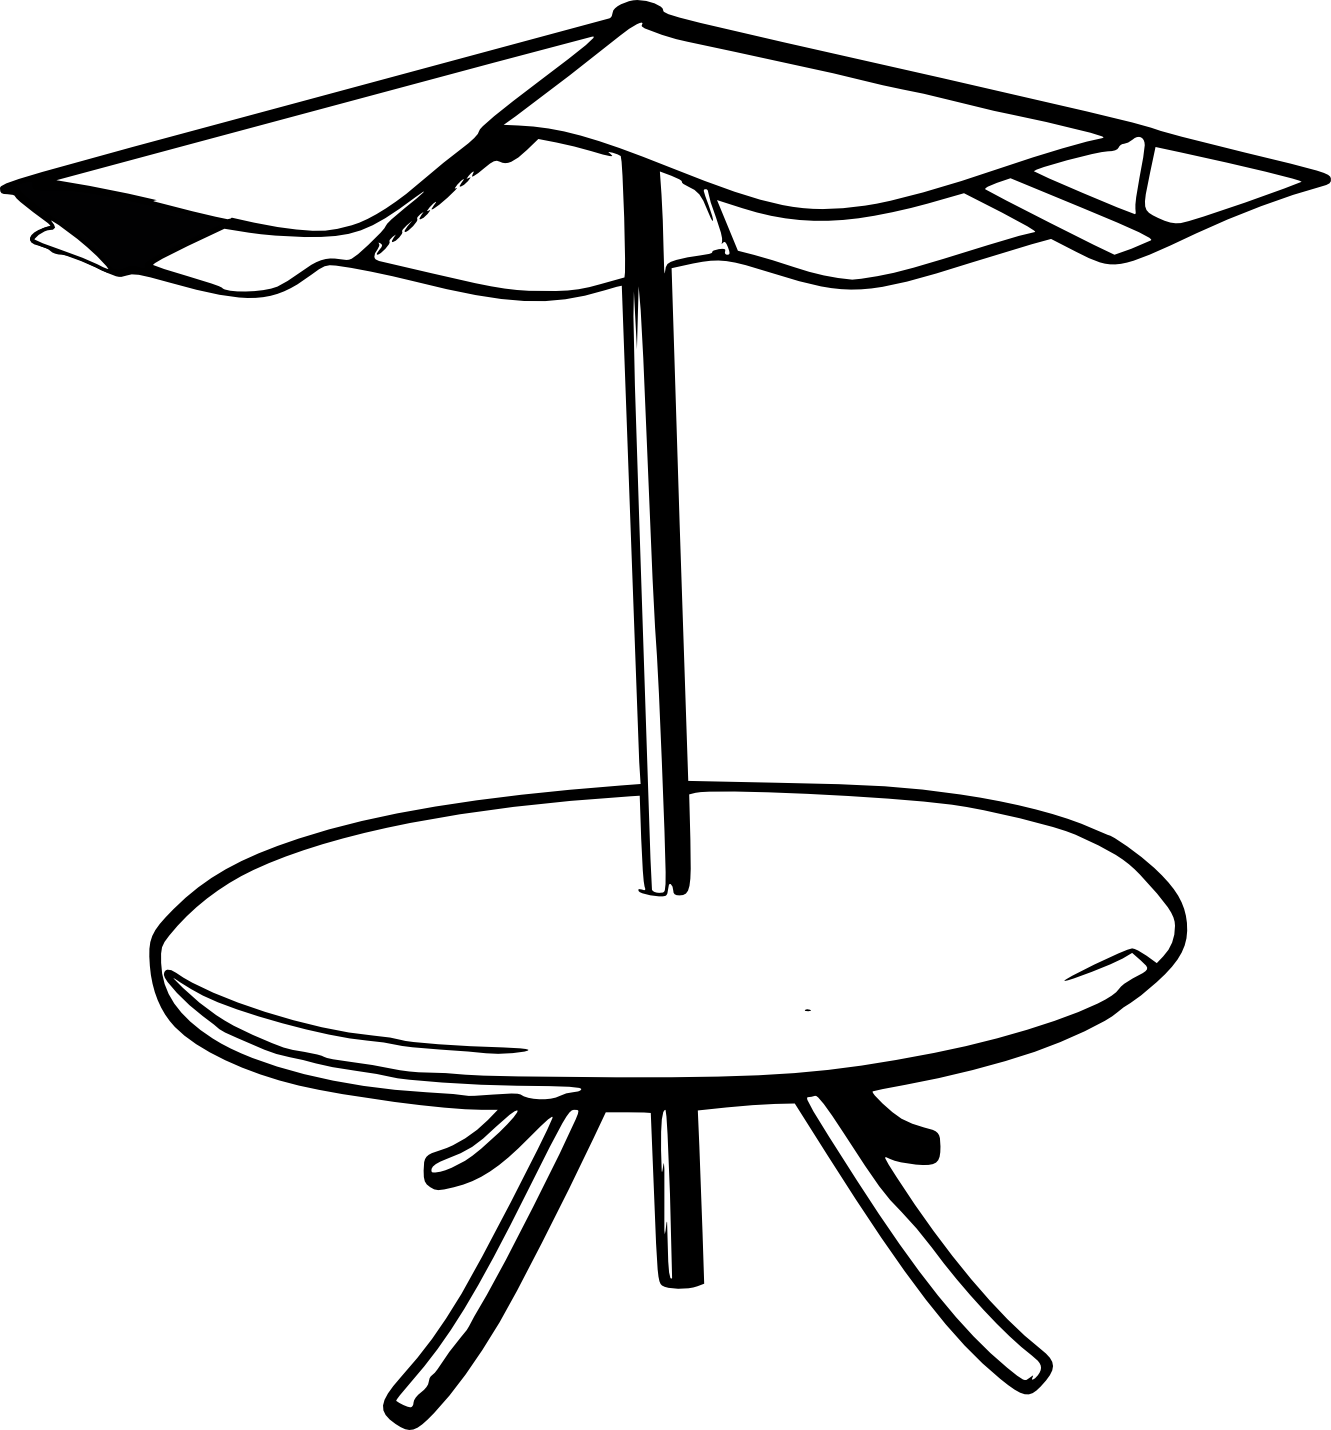 Line Drawing Table : Umbrella coloring sheet clipart best